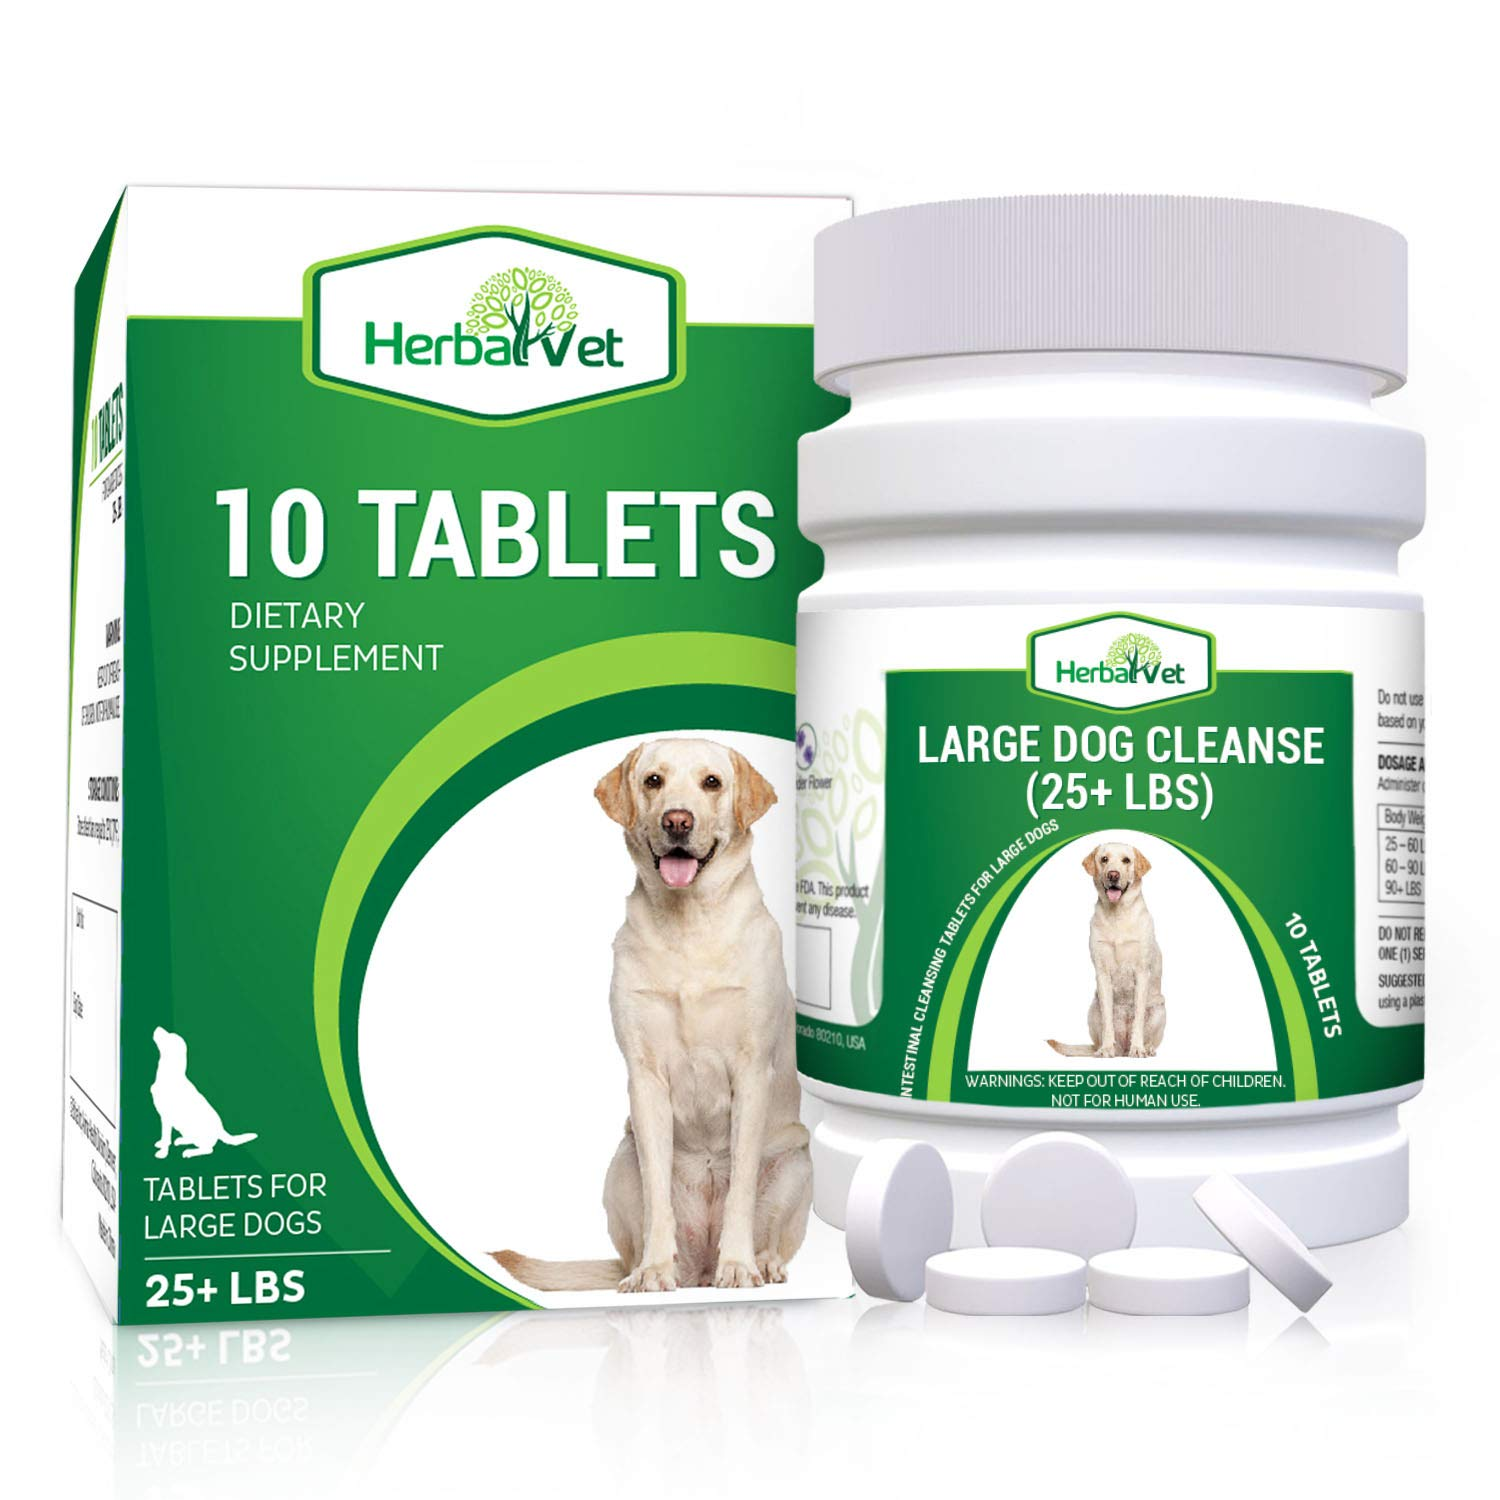 HerbalVet Natural Dog Dewormer Alternative for All Dogs | 10 Tablets, Works for Puppies, Intestine Cleanse| Helpful E-Book Included by HerbalVet